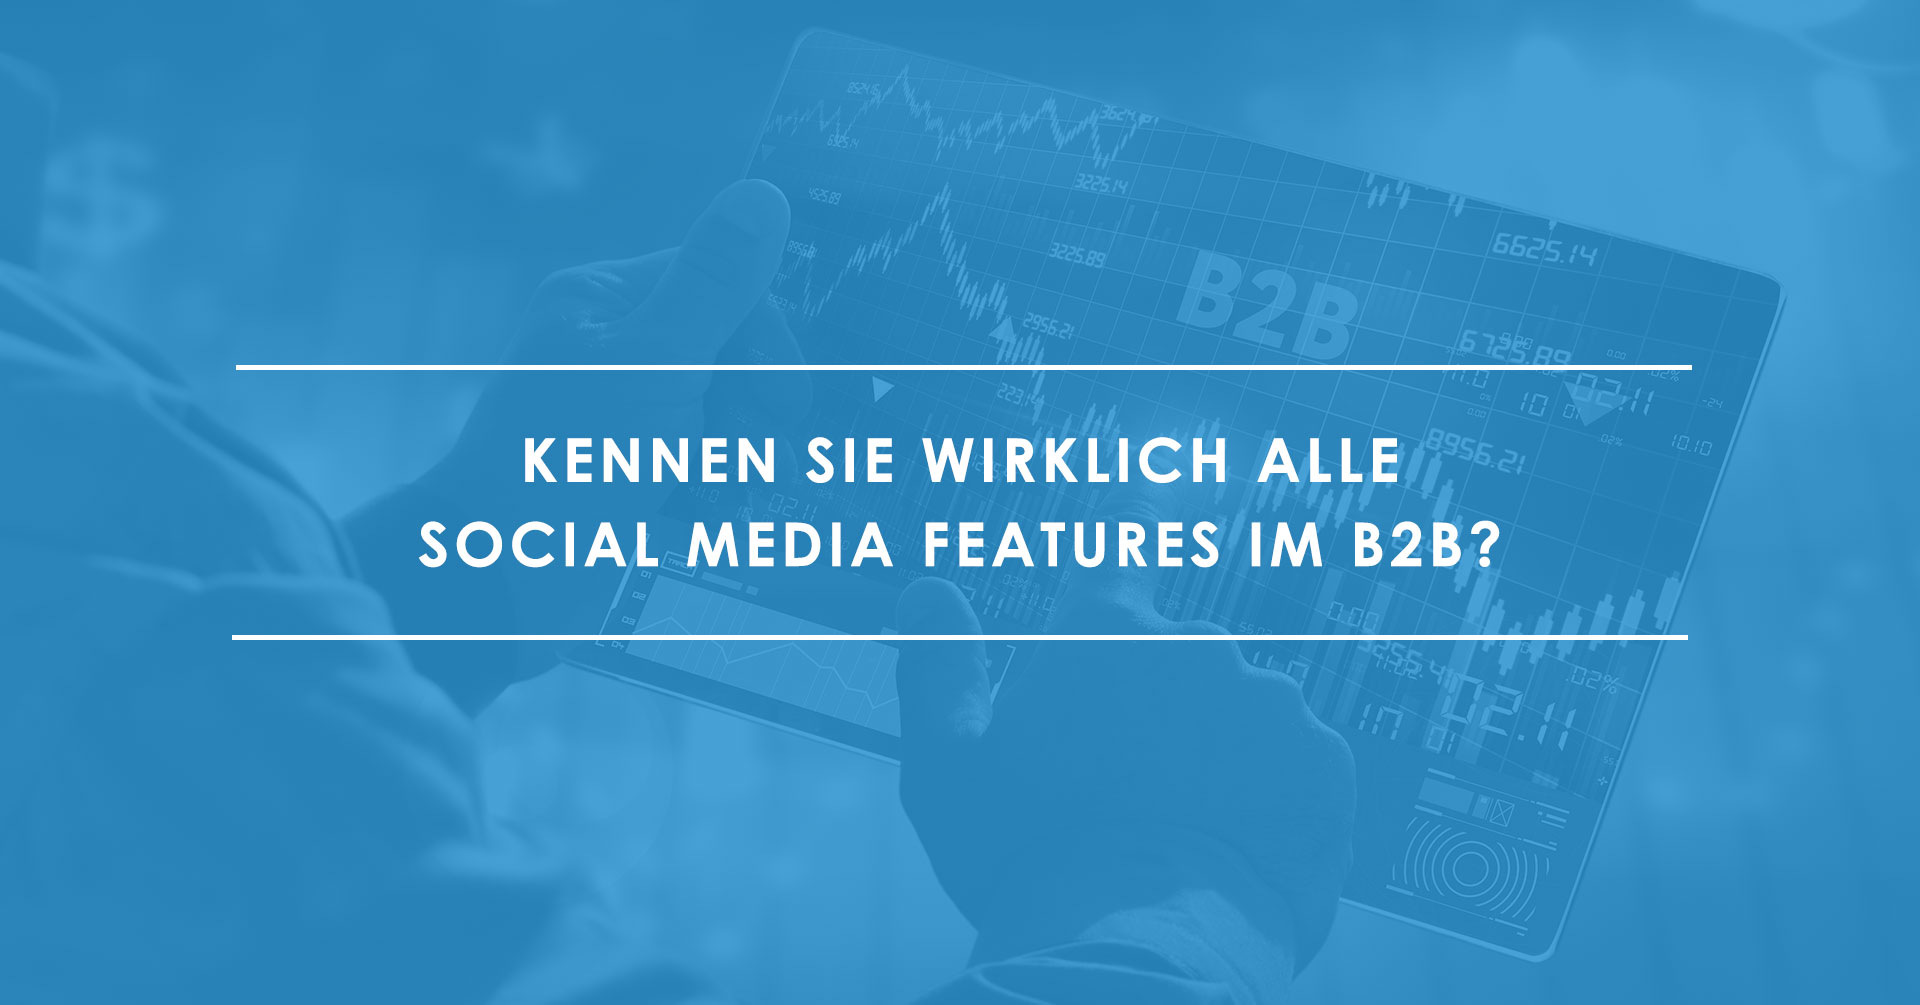 B2B--Versteckte-Facebook-,-Twitter--&-LinkedIn-Features